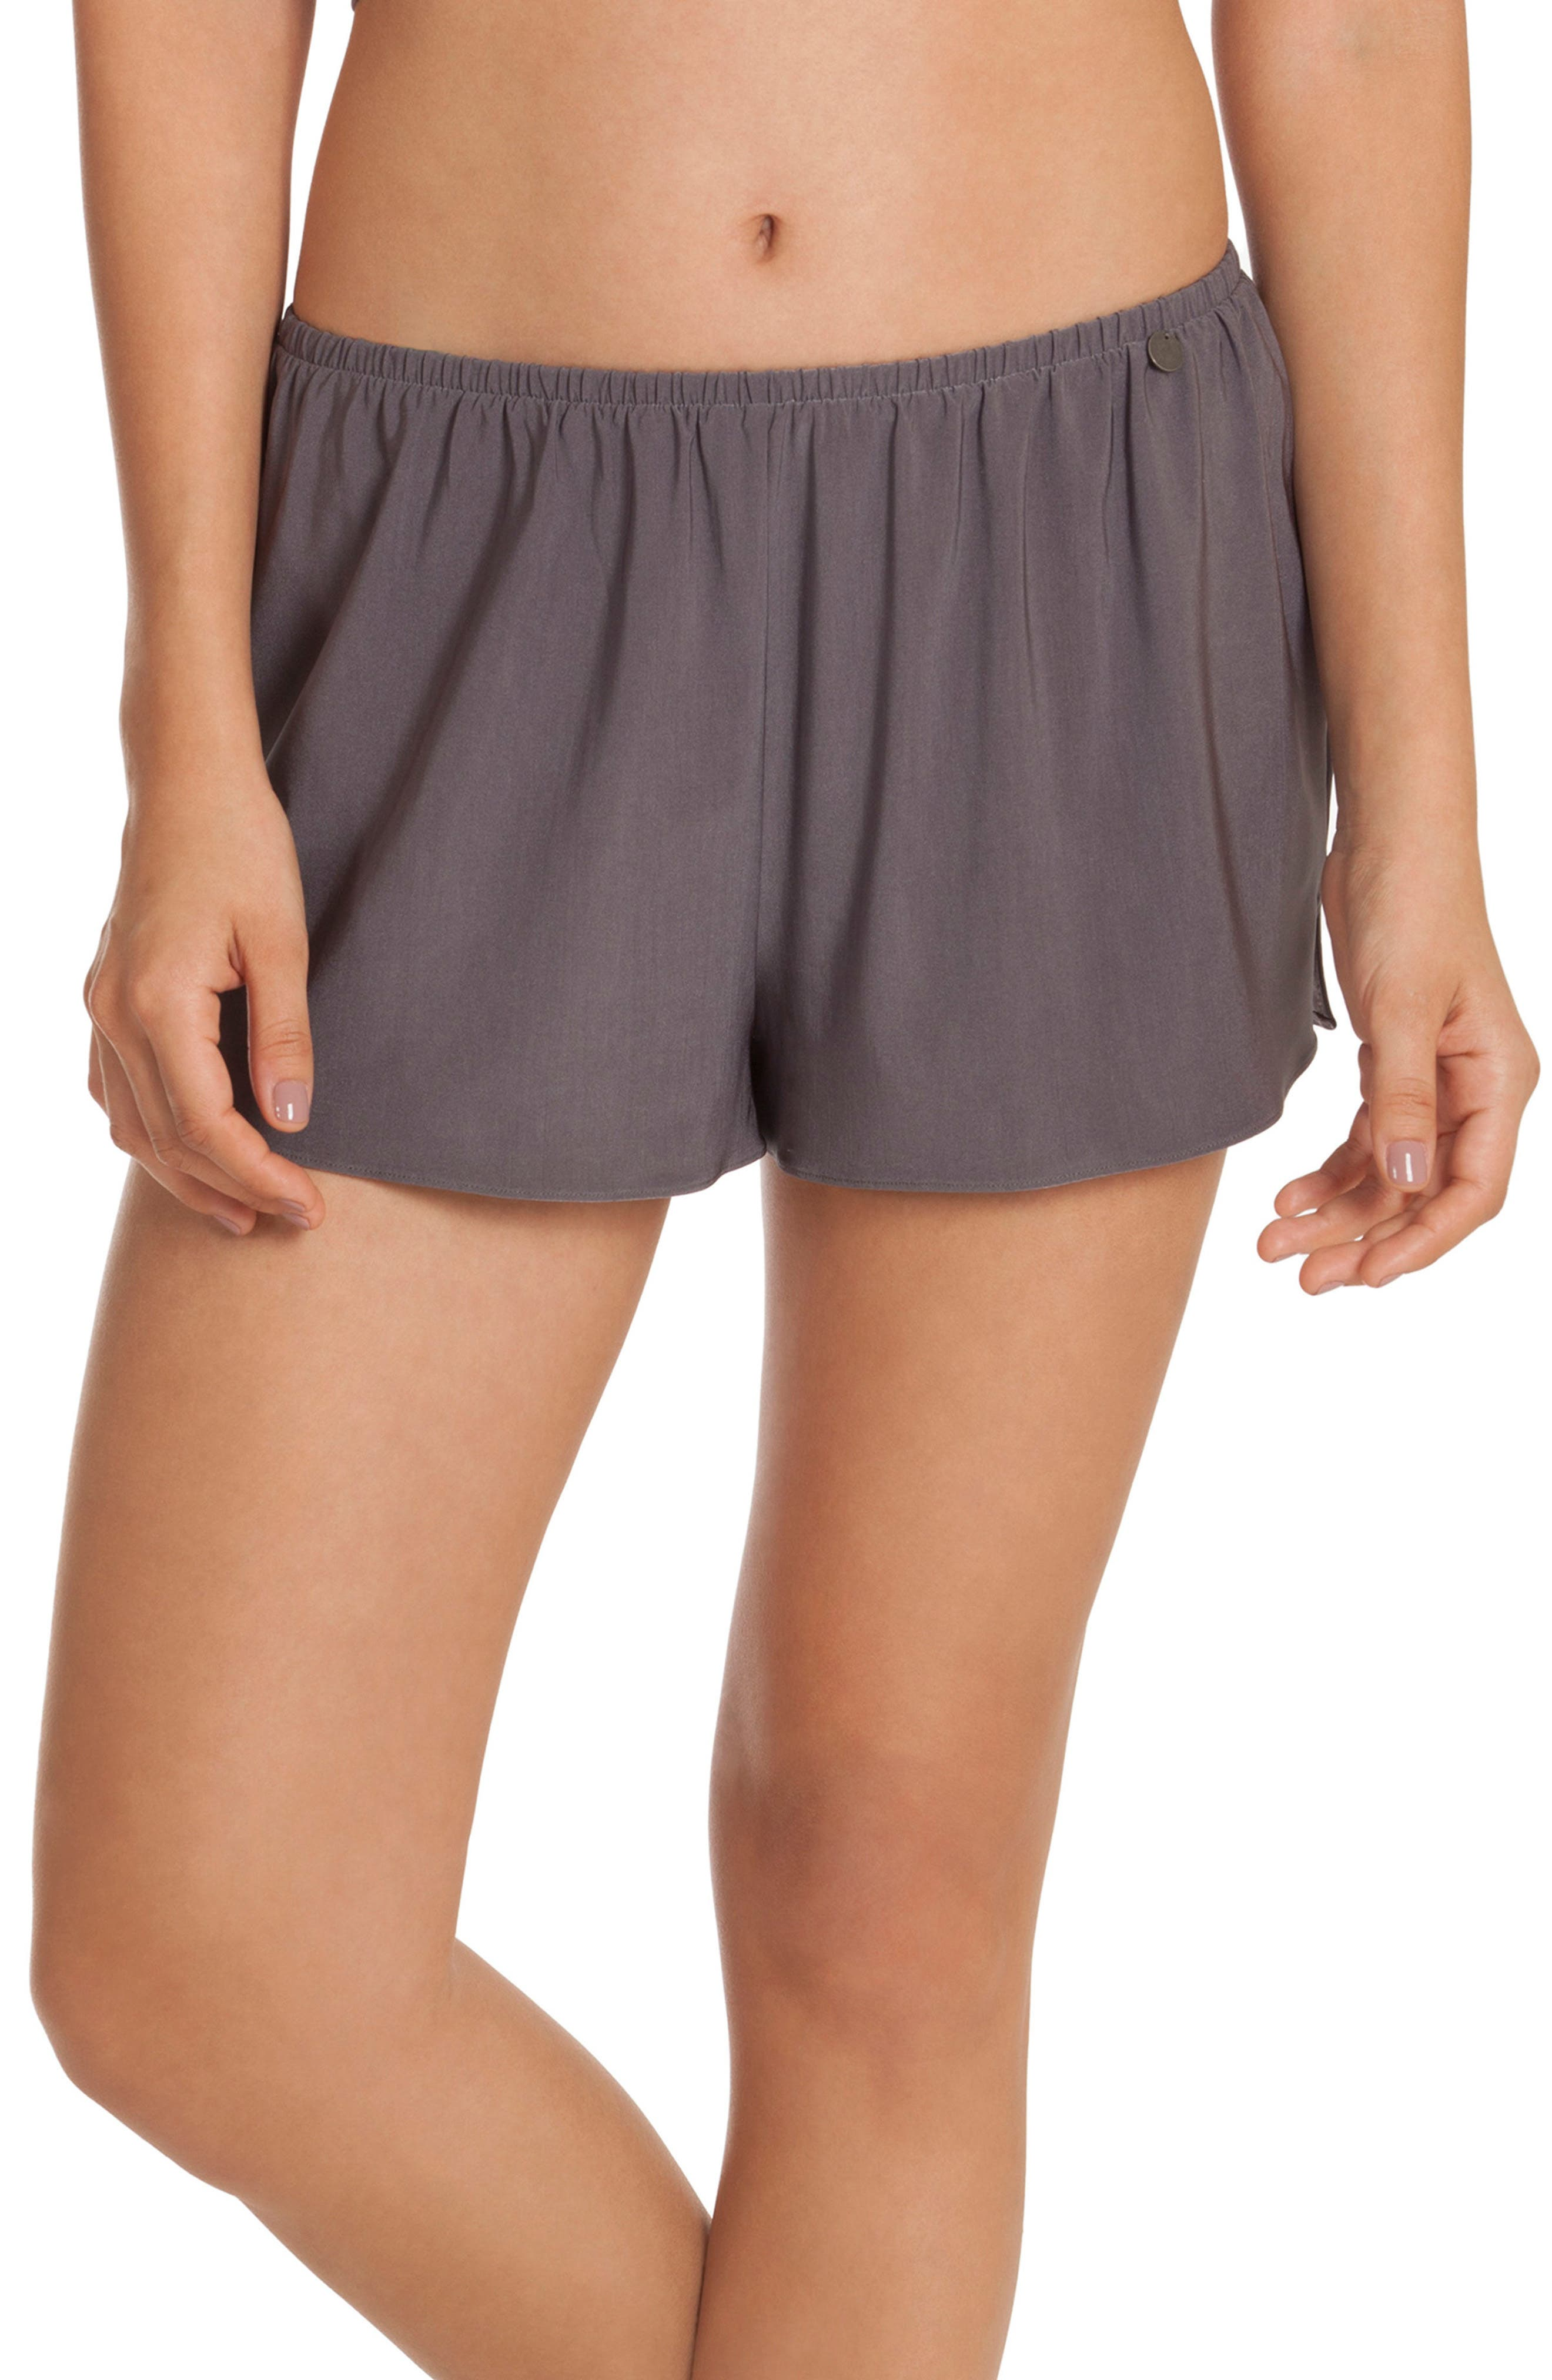 Pajama Shorts,                             Main thumbnail 1, color,                             Charcoal